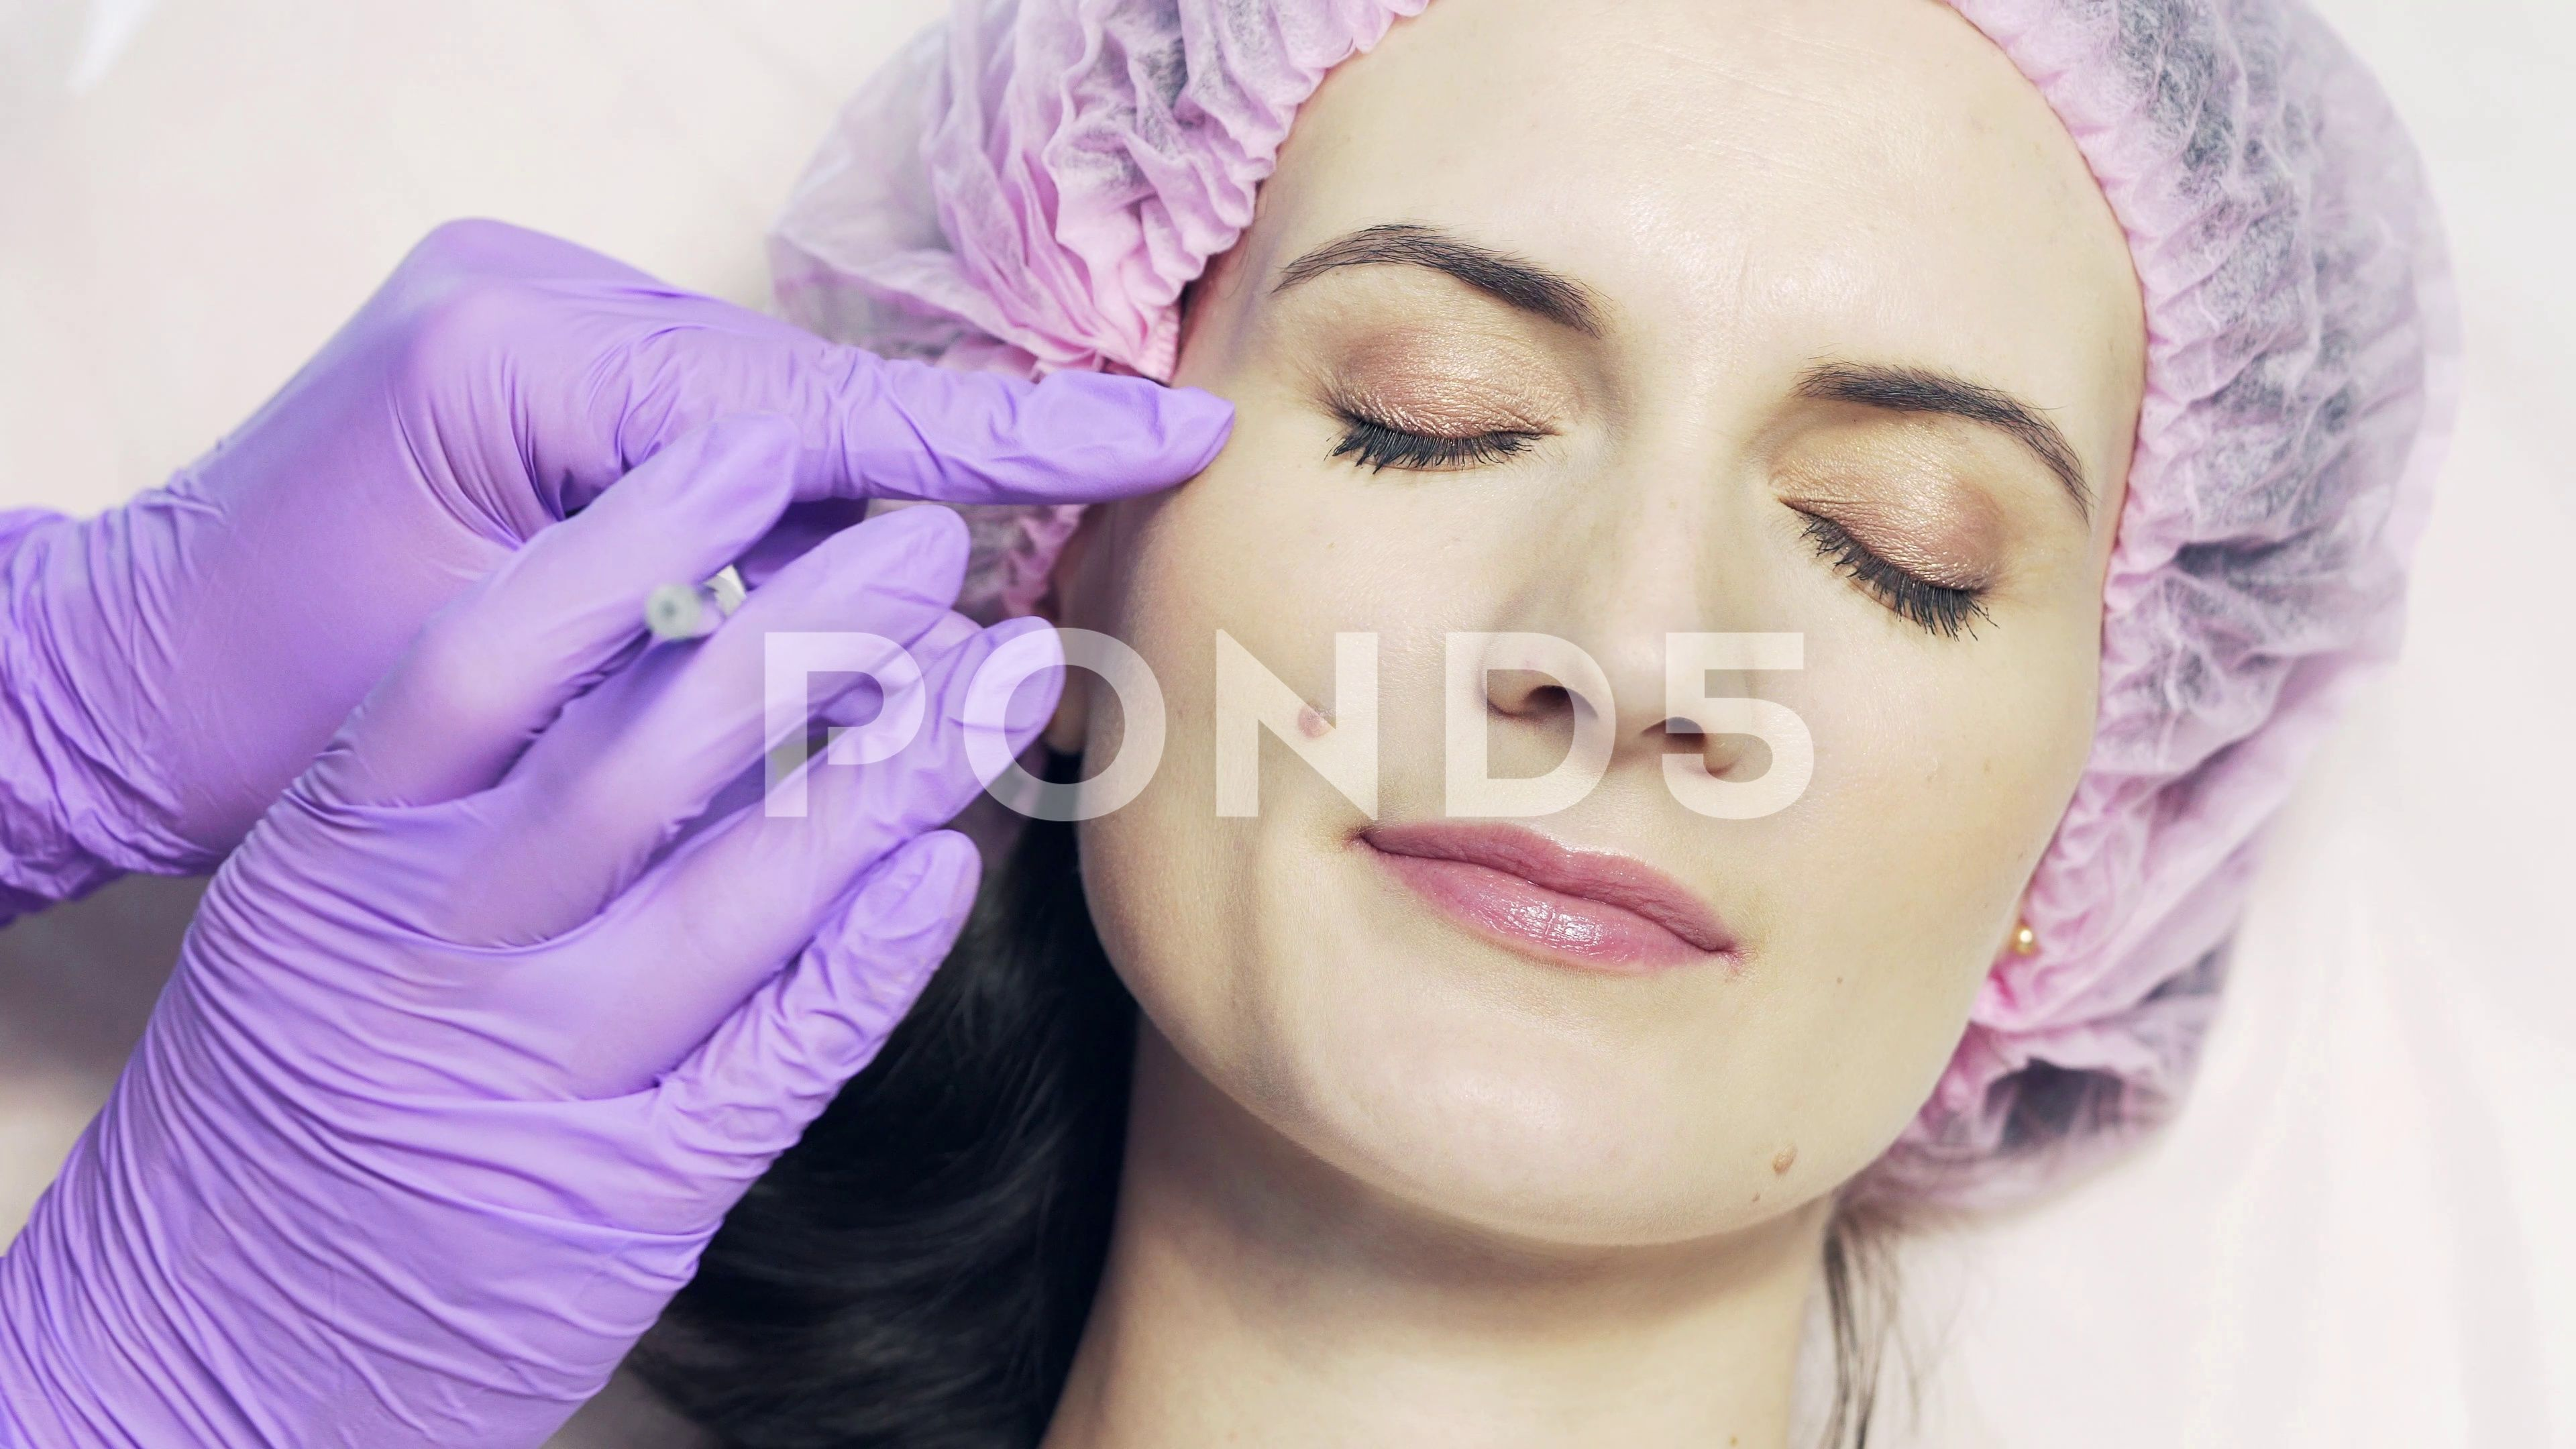 Patient in medical cap receives facial injection in beauty salon Stock Footage receivesfacialcapPatient